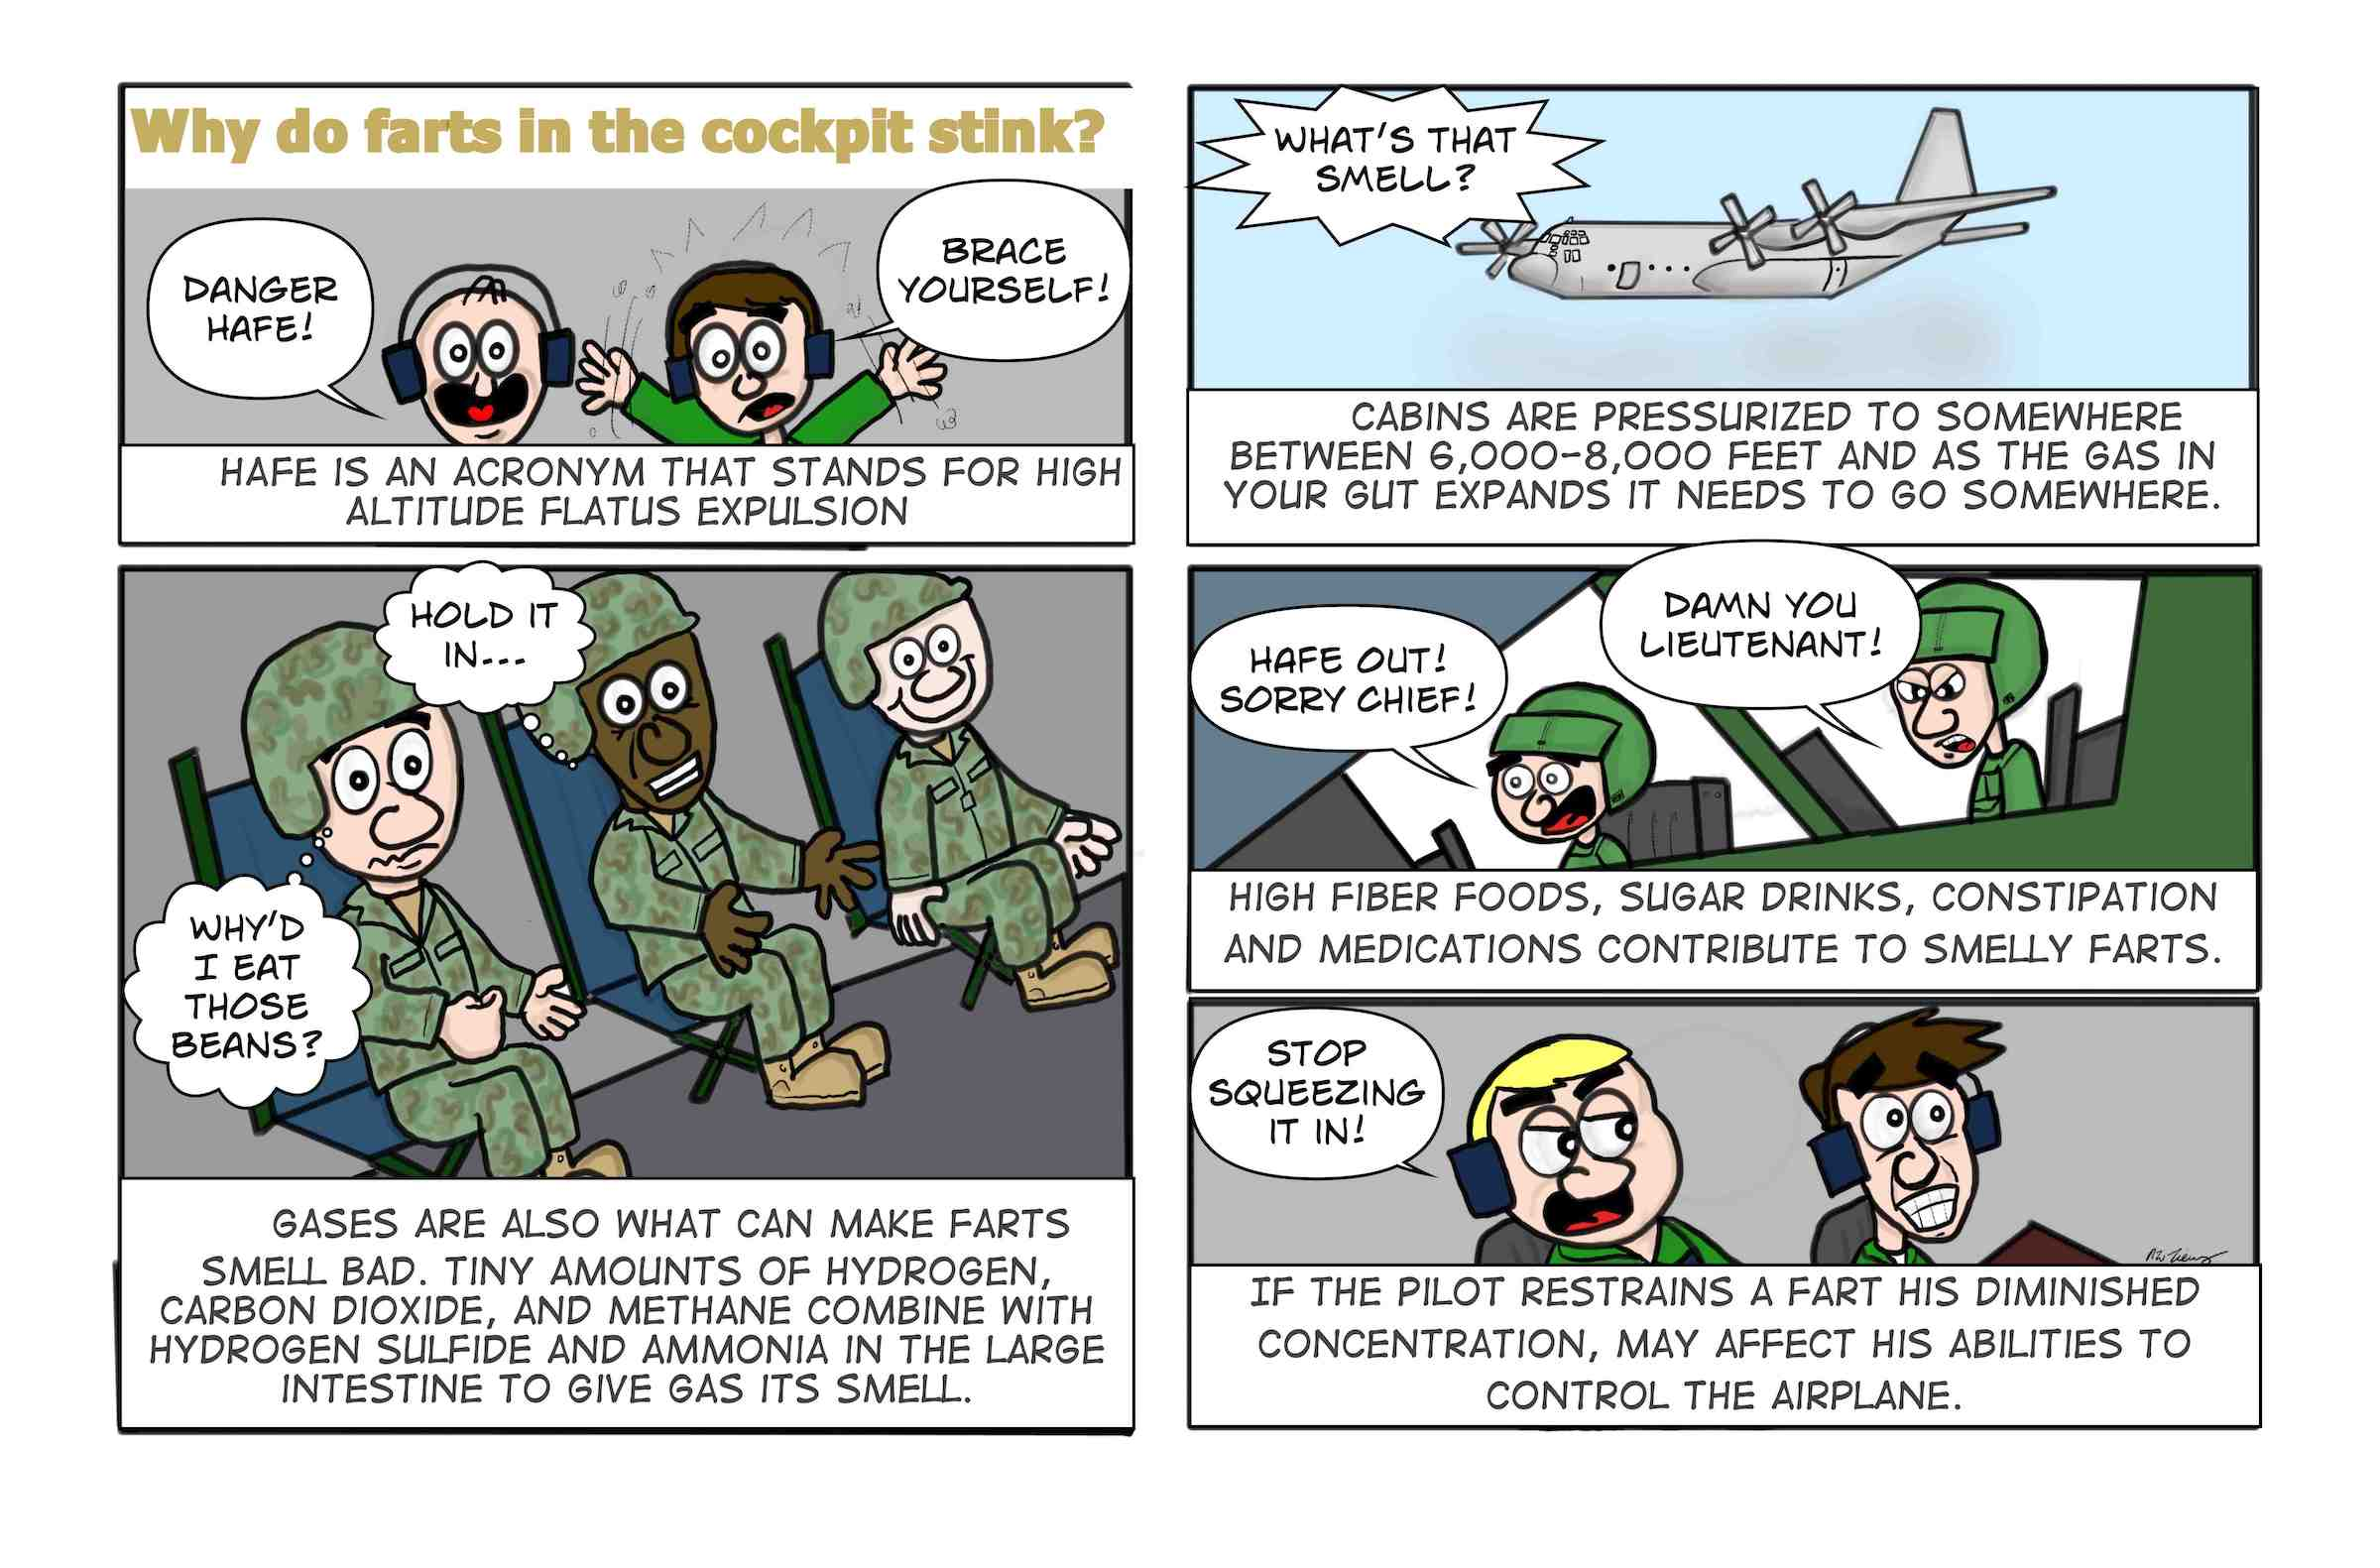 The reasons why aviation farts smell in the cockpit.